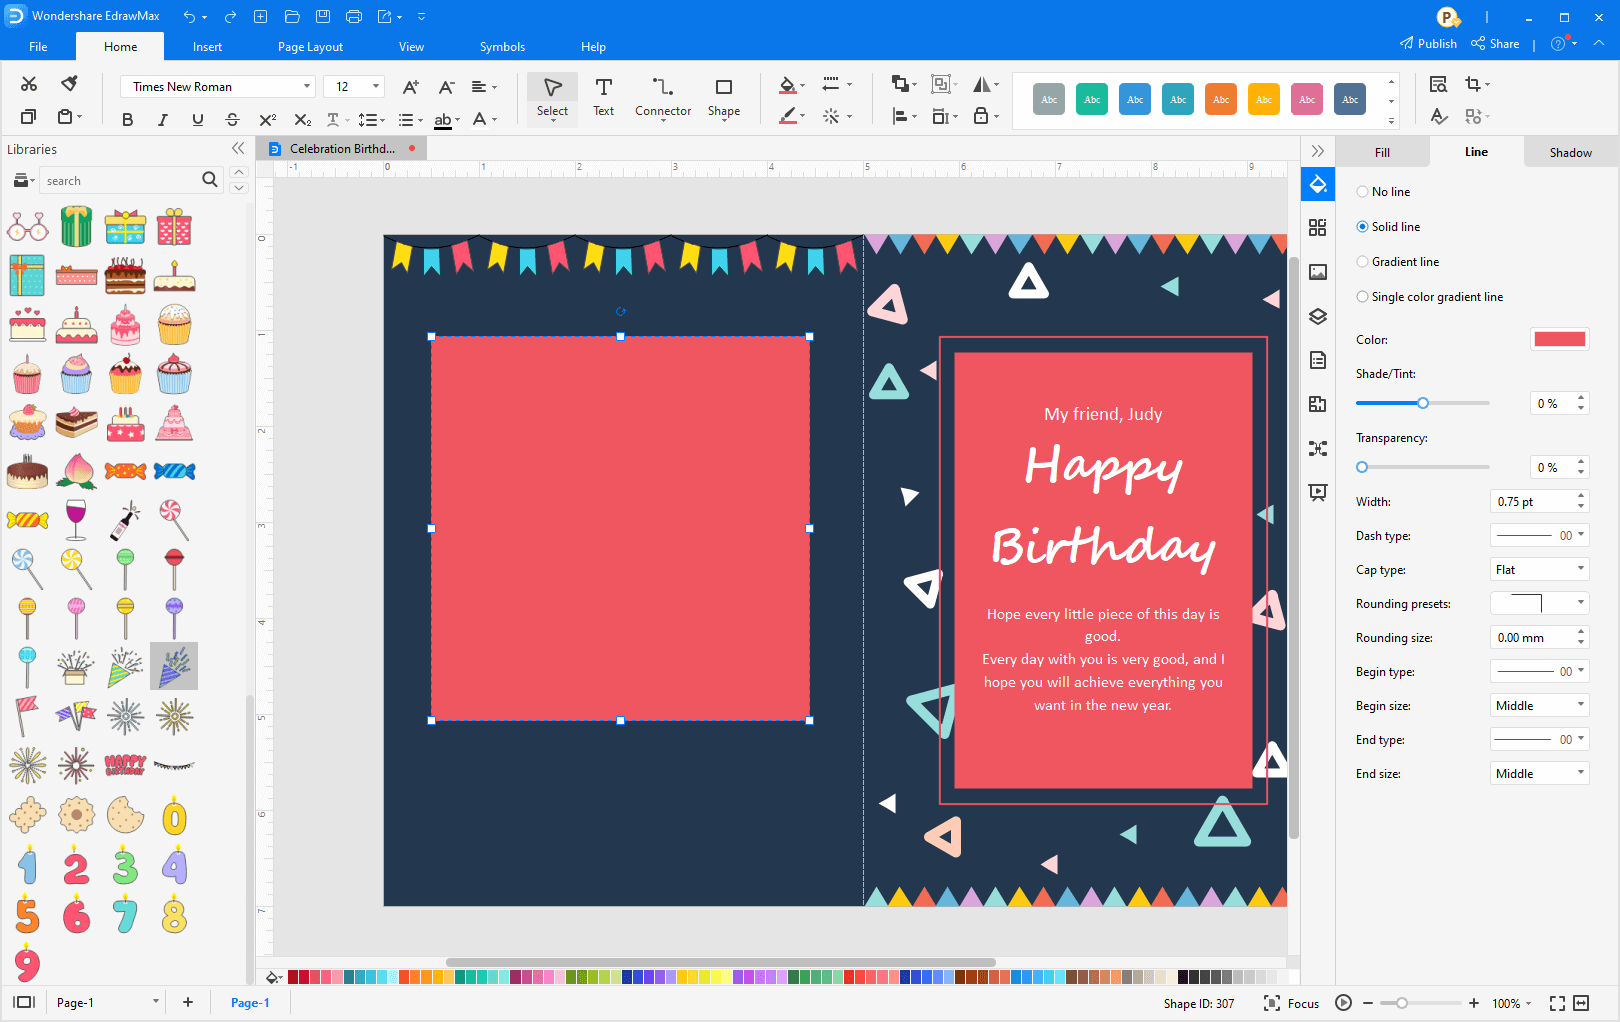 Enrich the card background